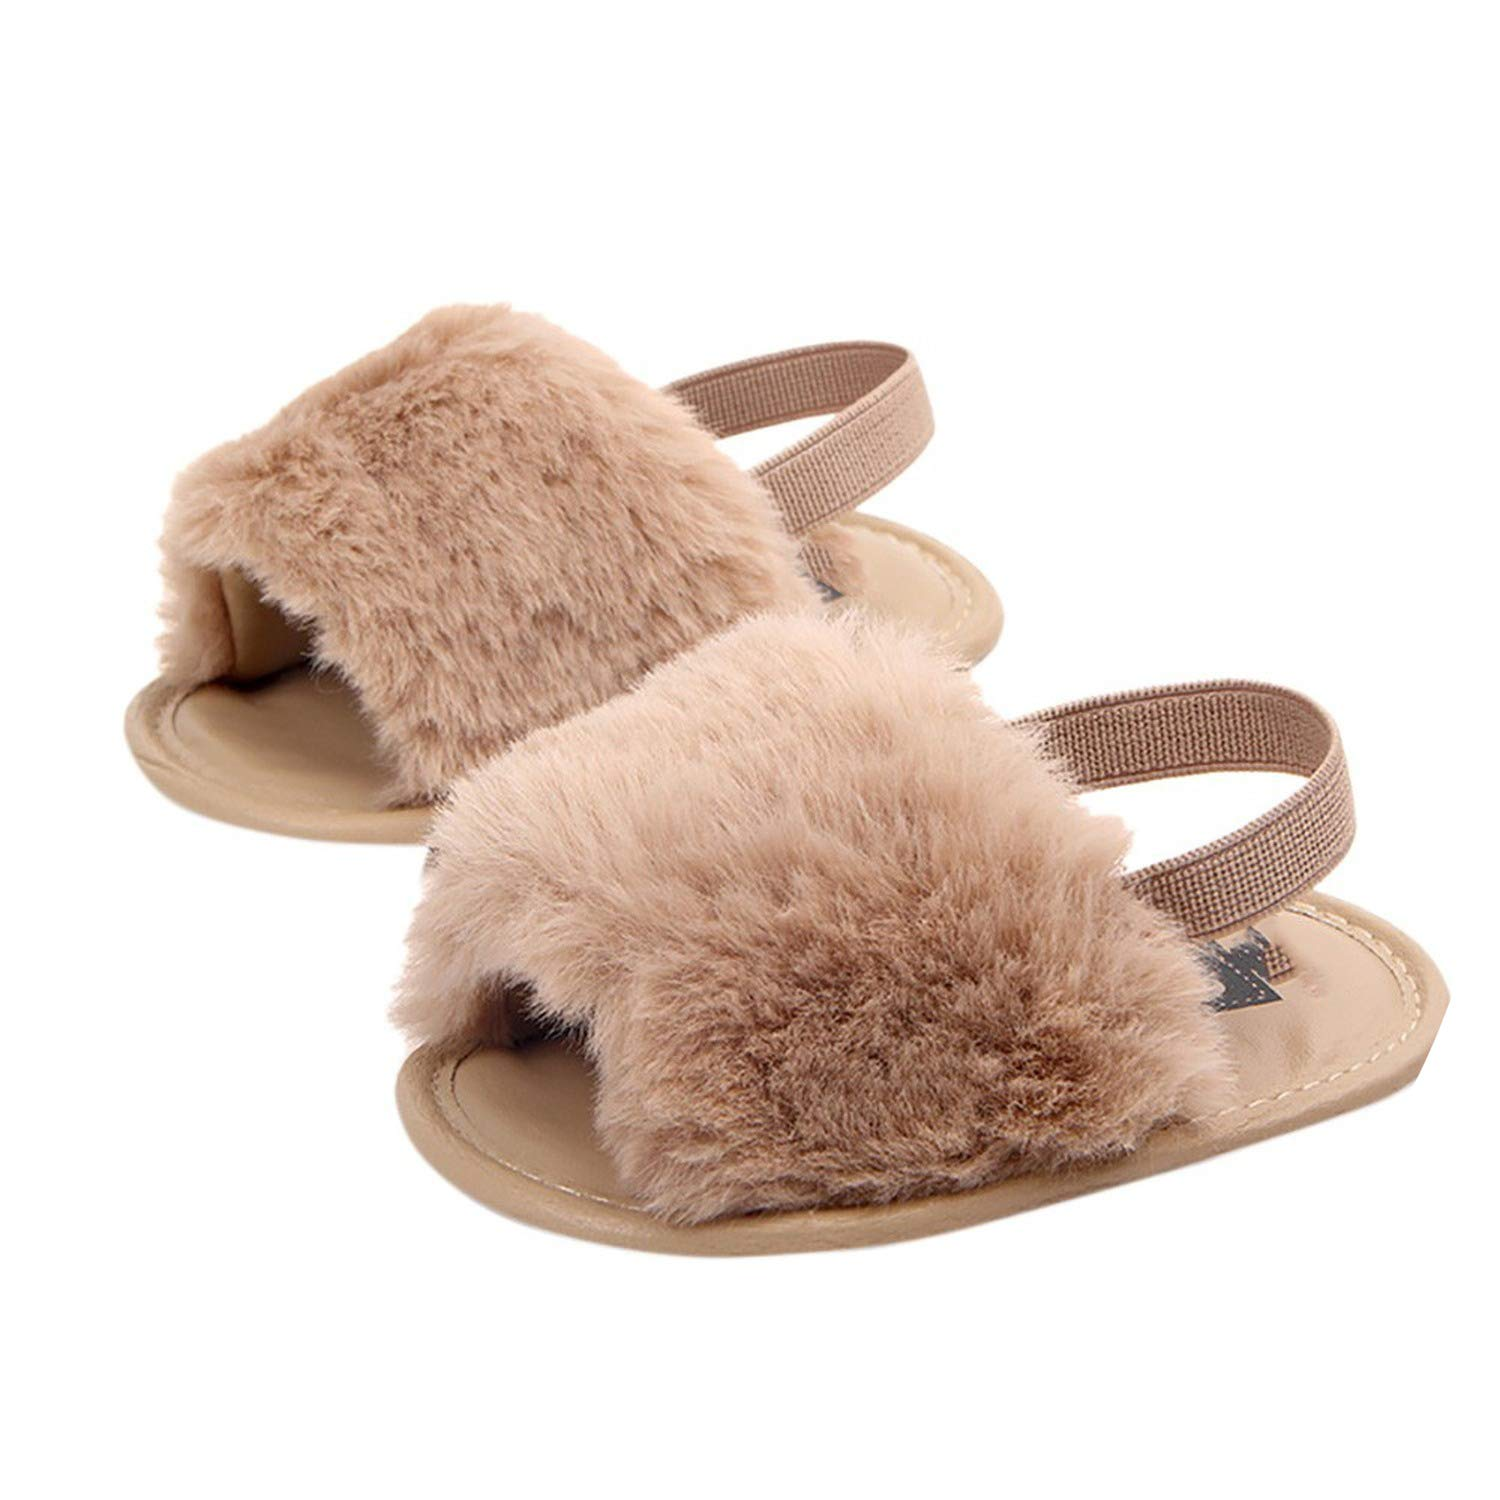 rose flowers Fashion 0-2Years Summer Newborn Infant Baby Letter Solid Flock Soft Sandals Slipper Comfortable Casual Shoes